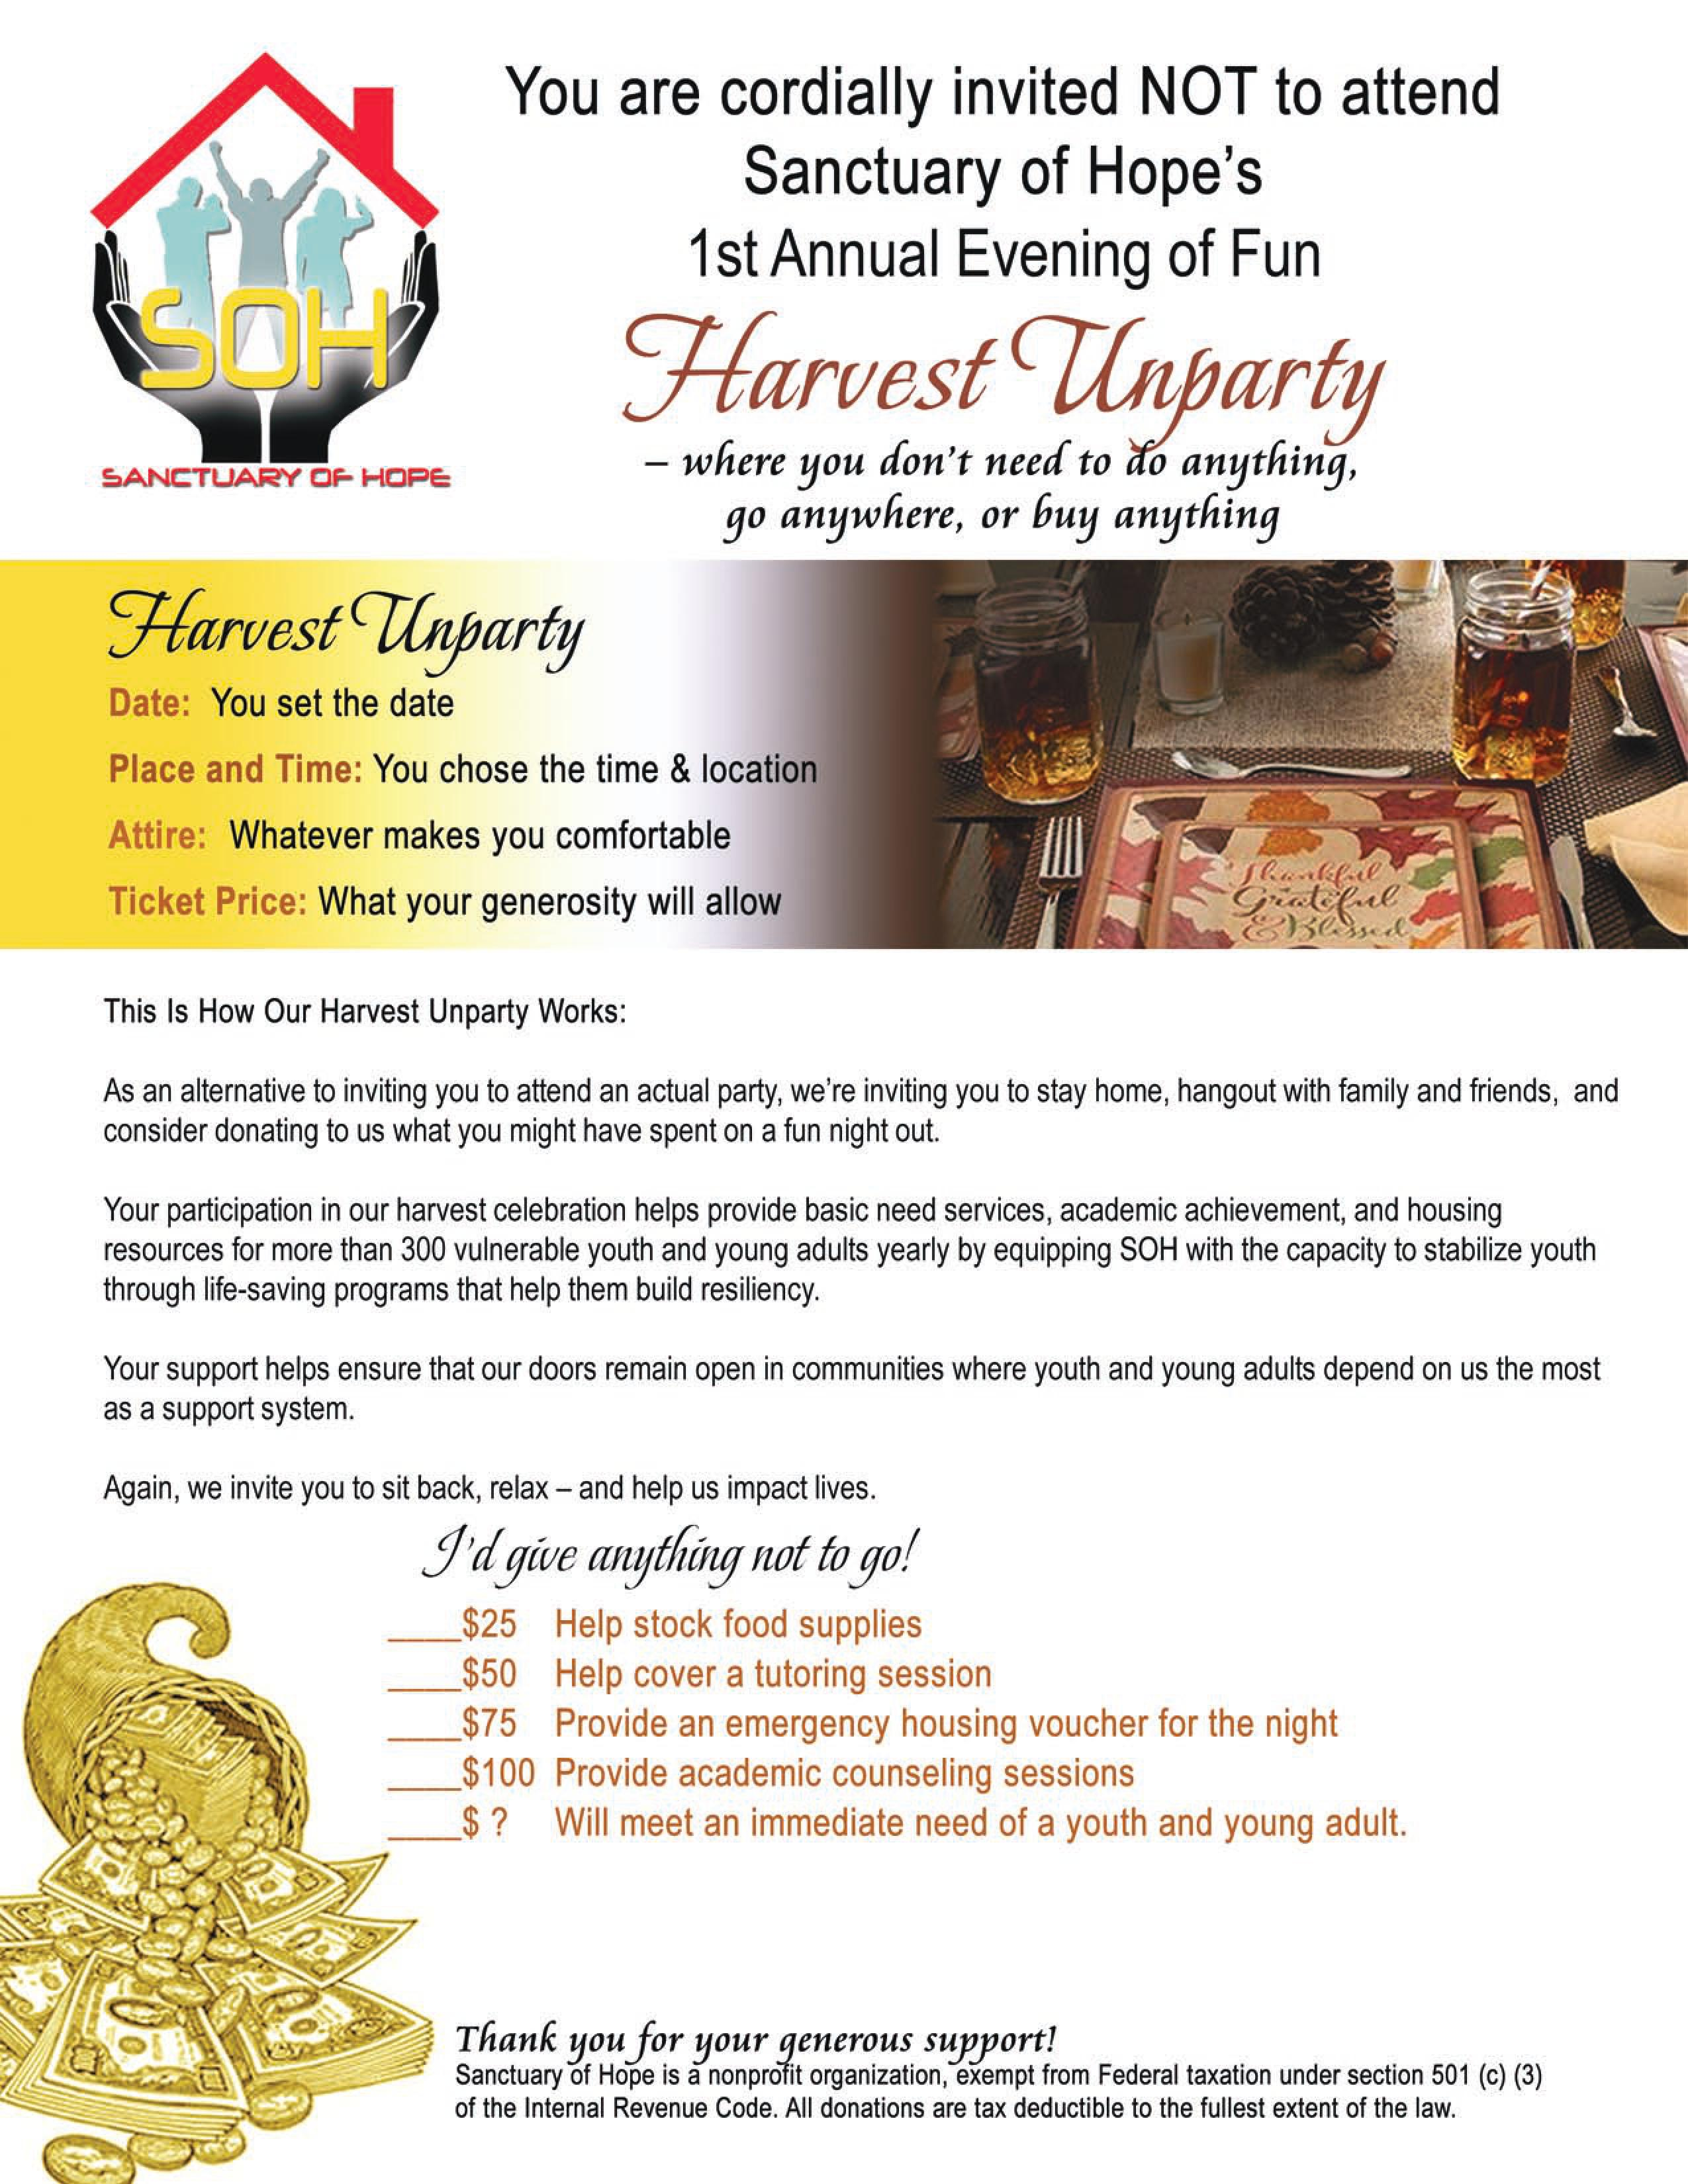 An Evening of Fun at the Harvest Unparty - Sanctuary of Hope